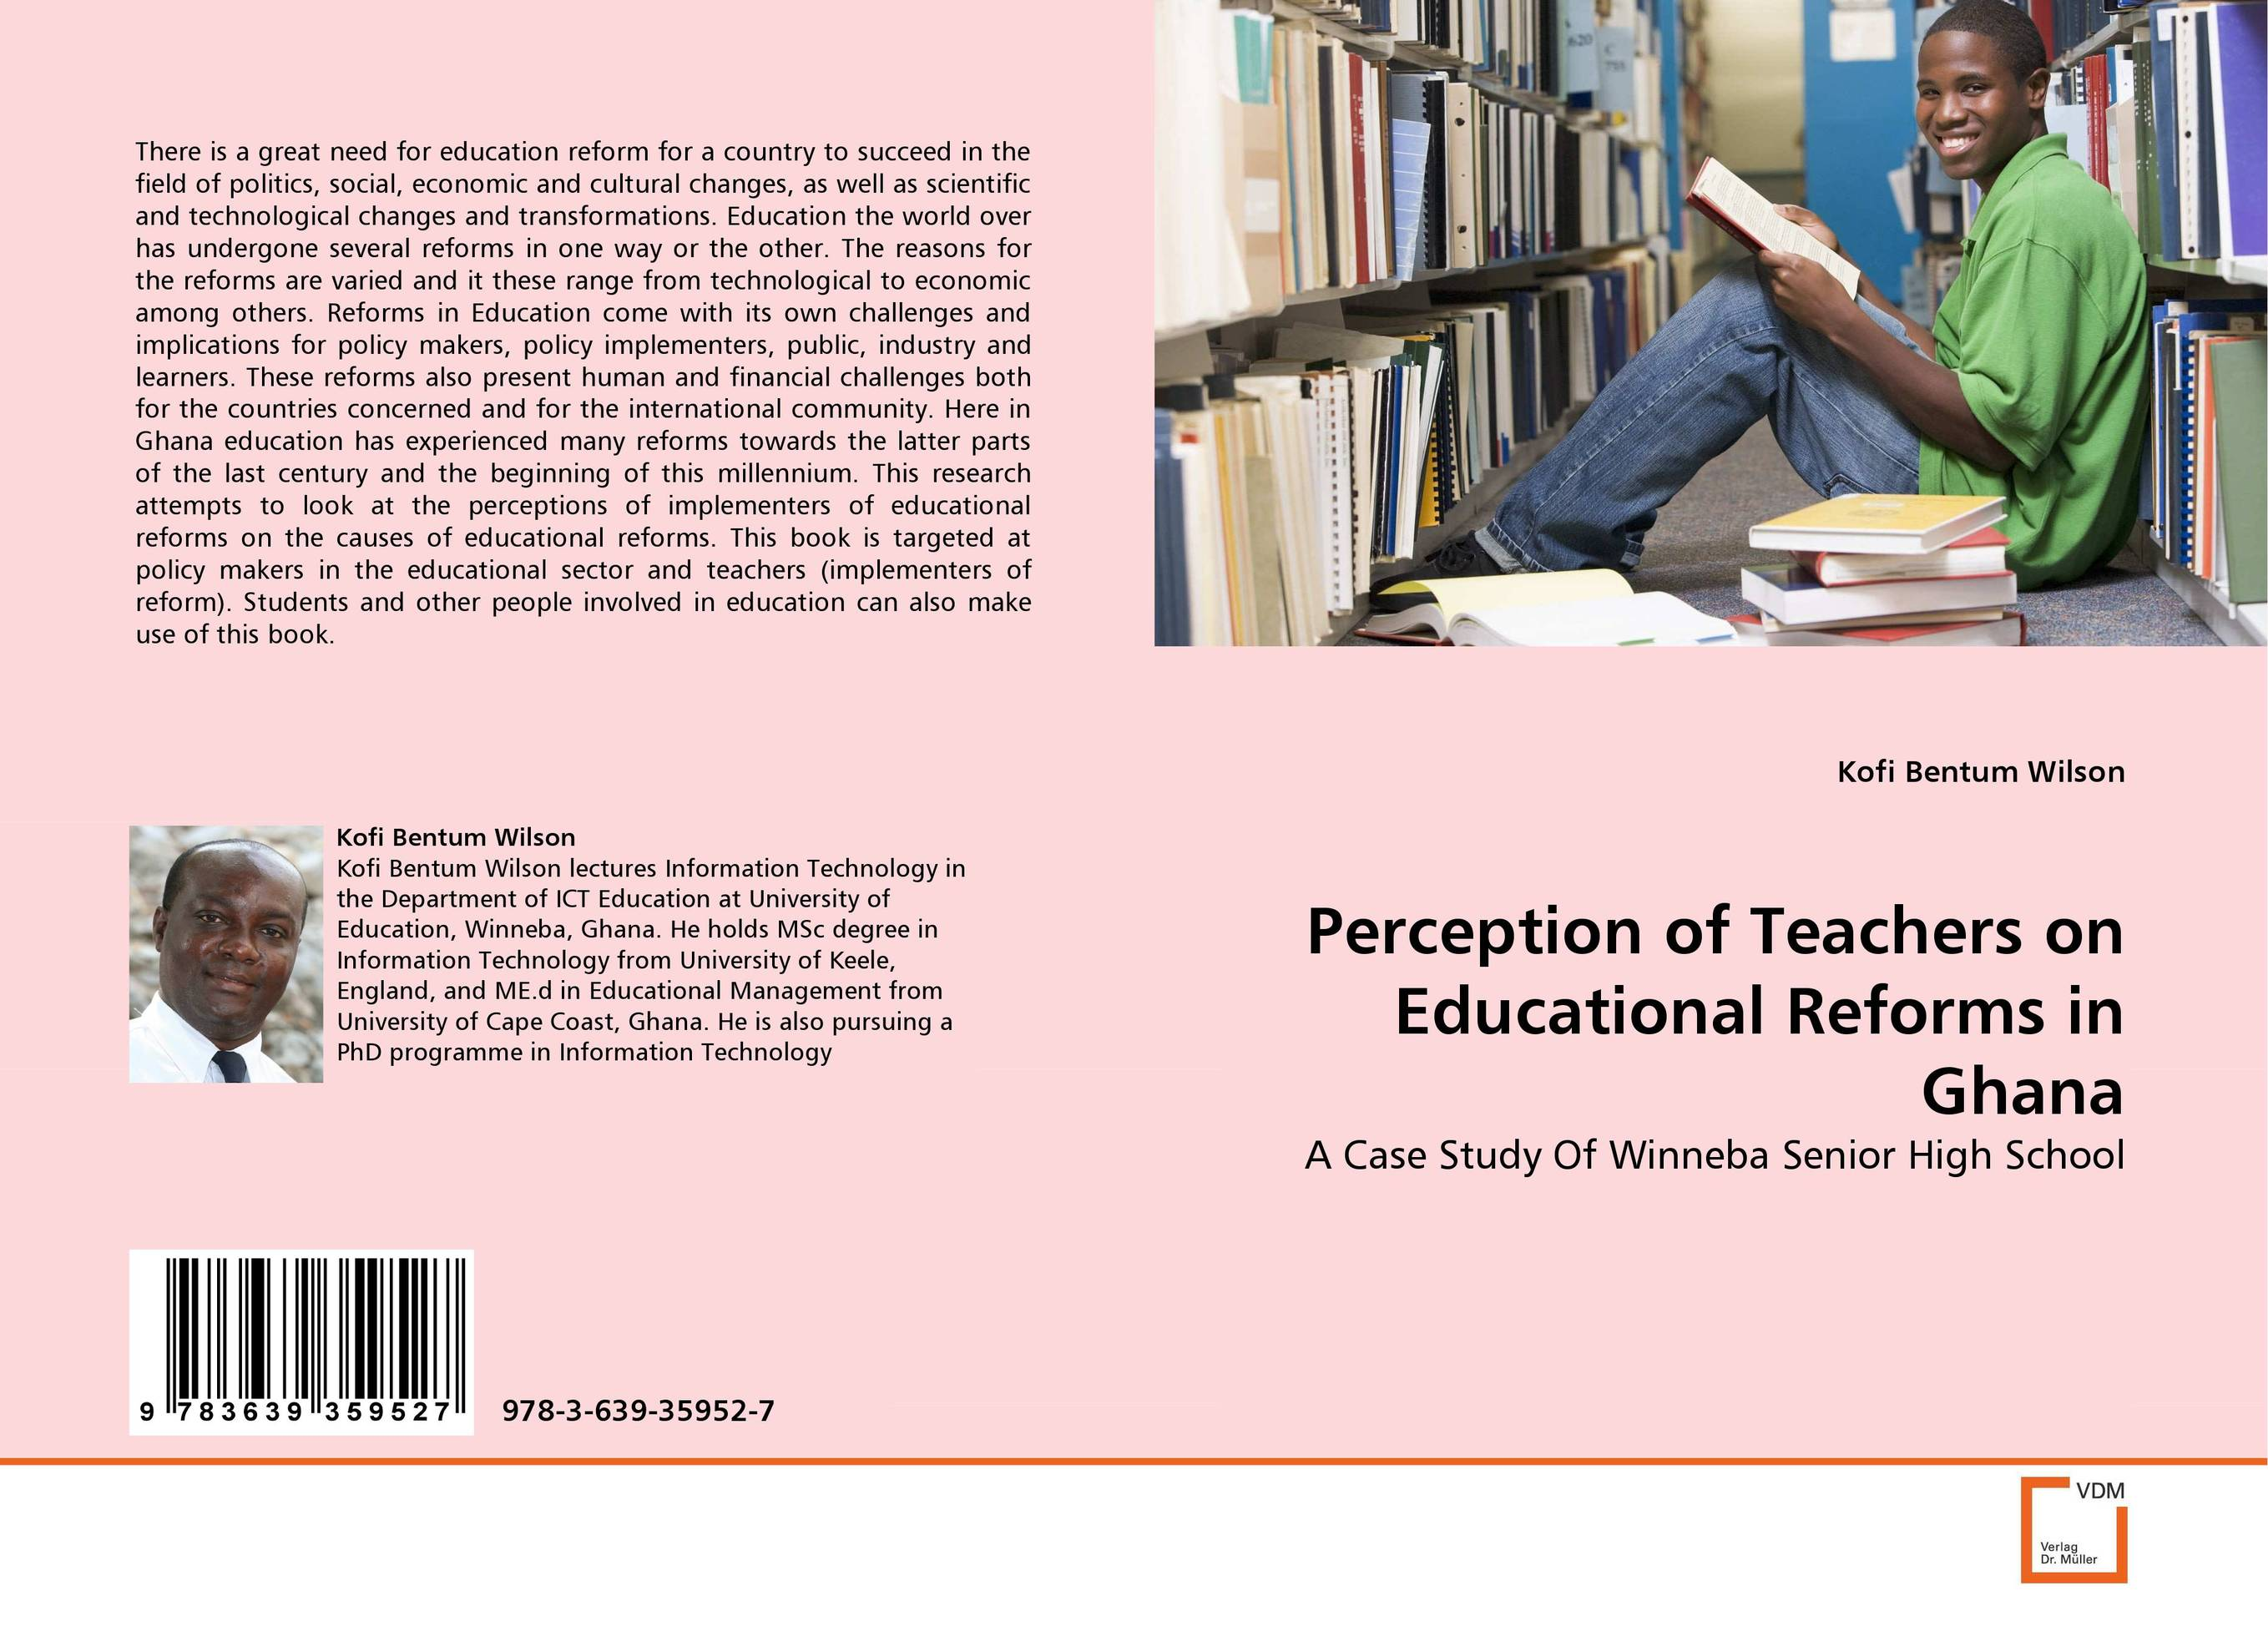 Perception of Teachers on Educational Reforms in Ghana